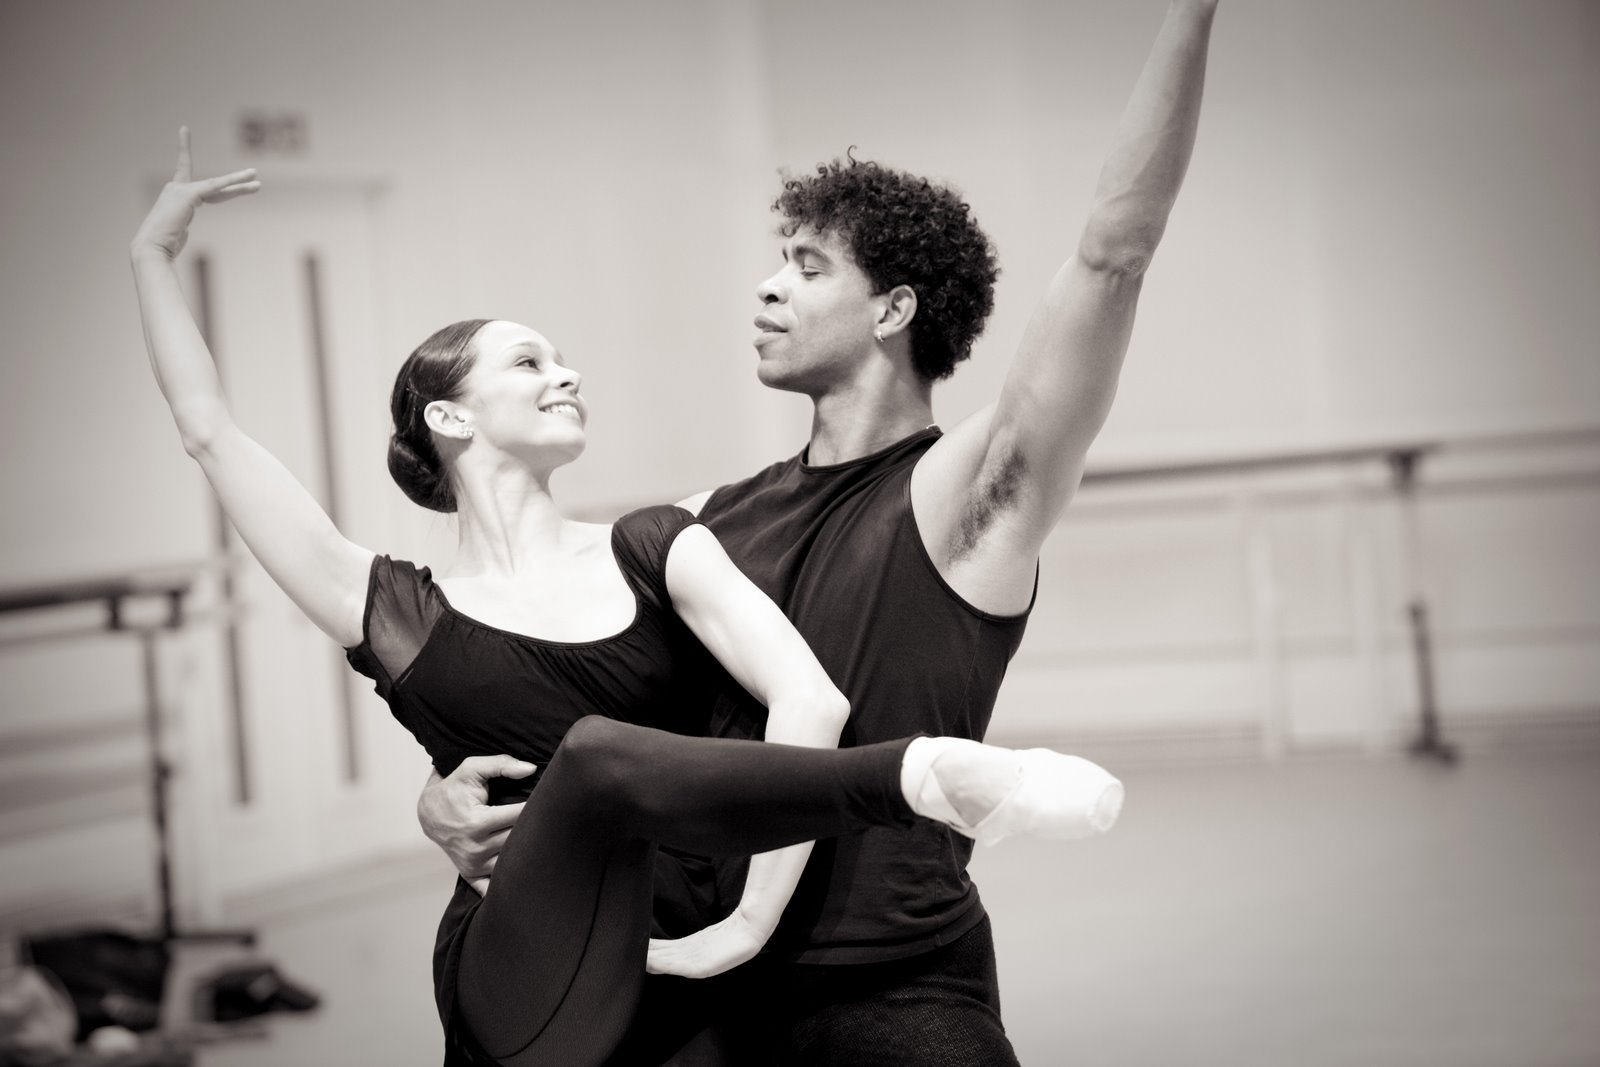 Carlos Acosta and dancer in pas de deux